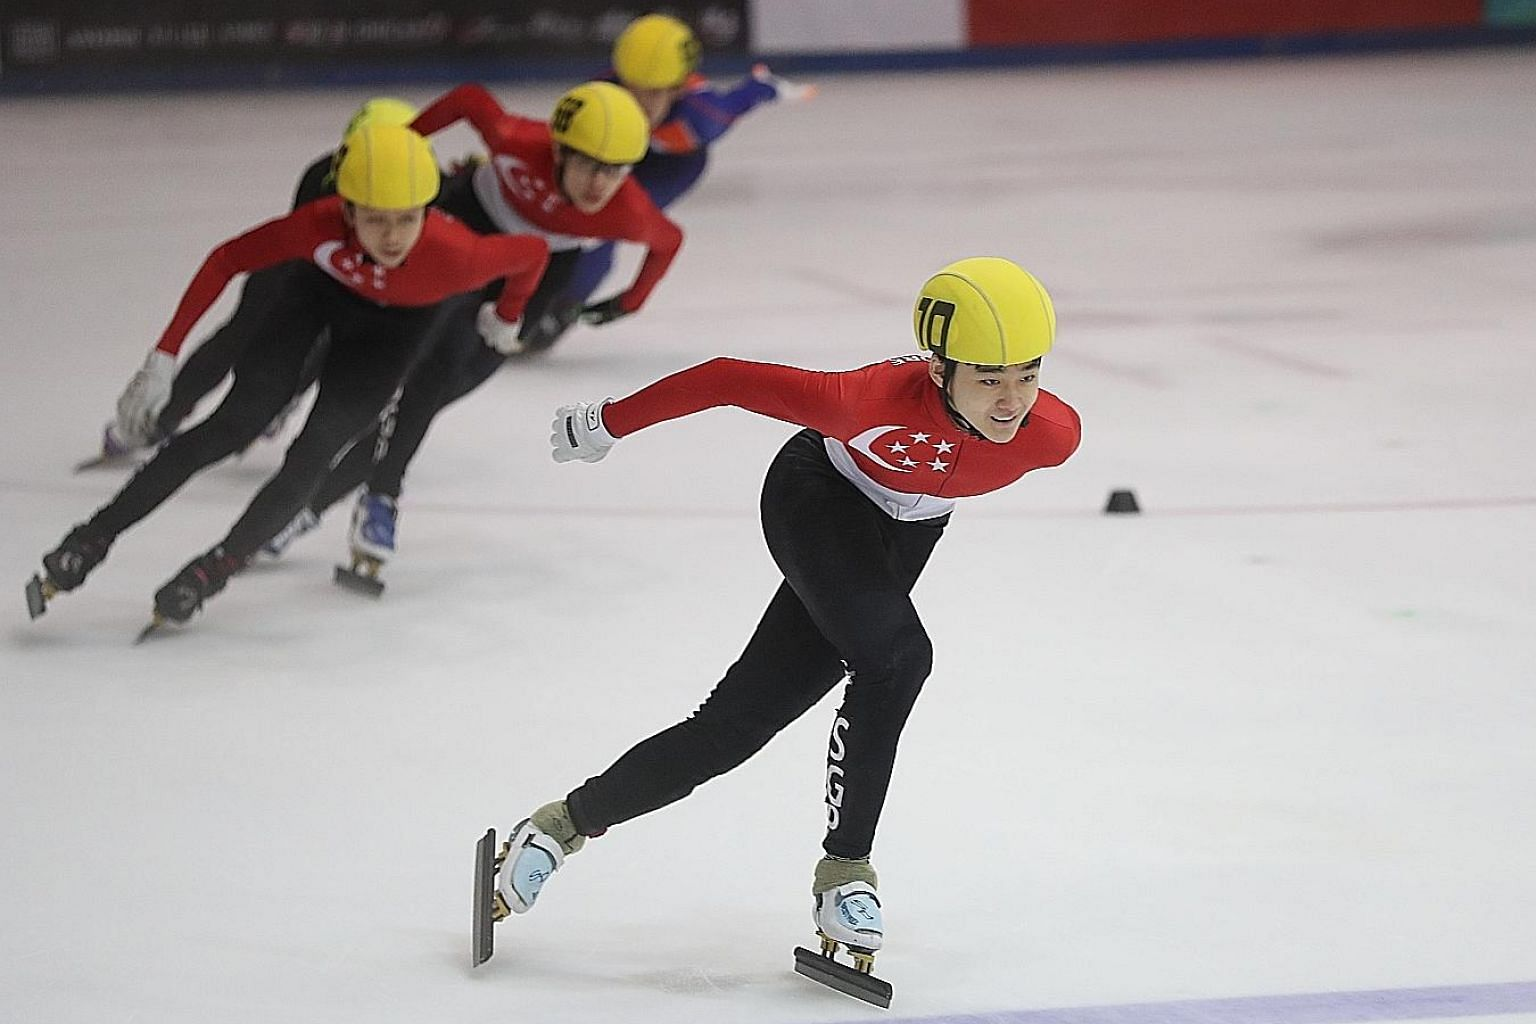 Trevor Tan en route to winning the Junior B Men's 1,000m at the SEA Open Short Track Trophy yesterday. Besides looking to qualify for the 2022 Winter Olympics, Trevor has also set his sights on doing well at the SEA Games in the Philippines at the en